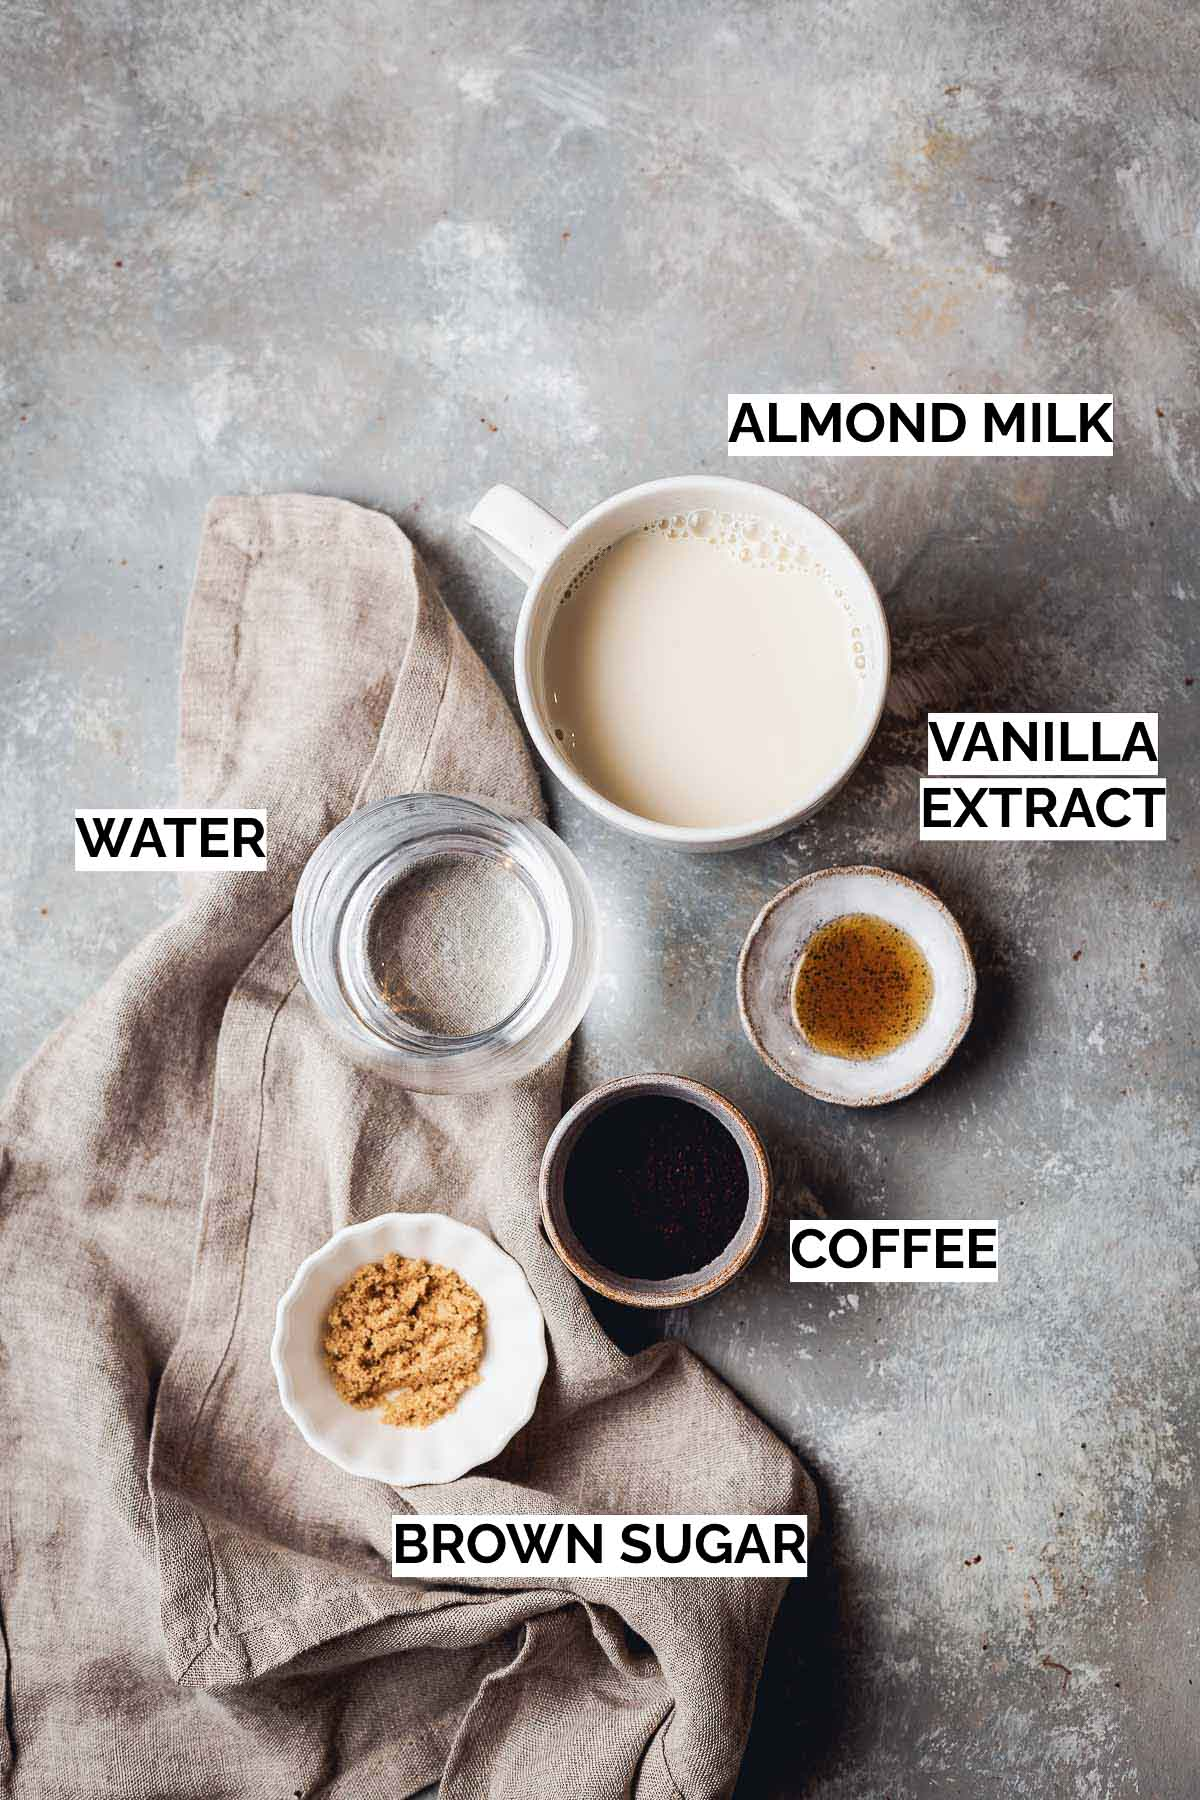 All five ingredients needed to make a latte laid on a flat grey surface.